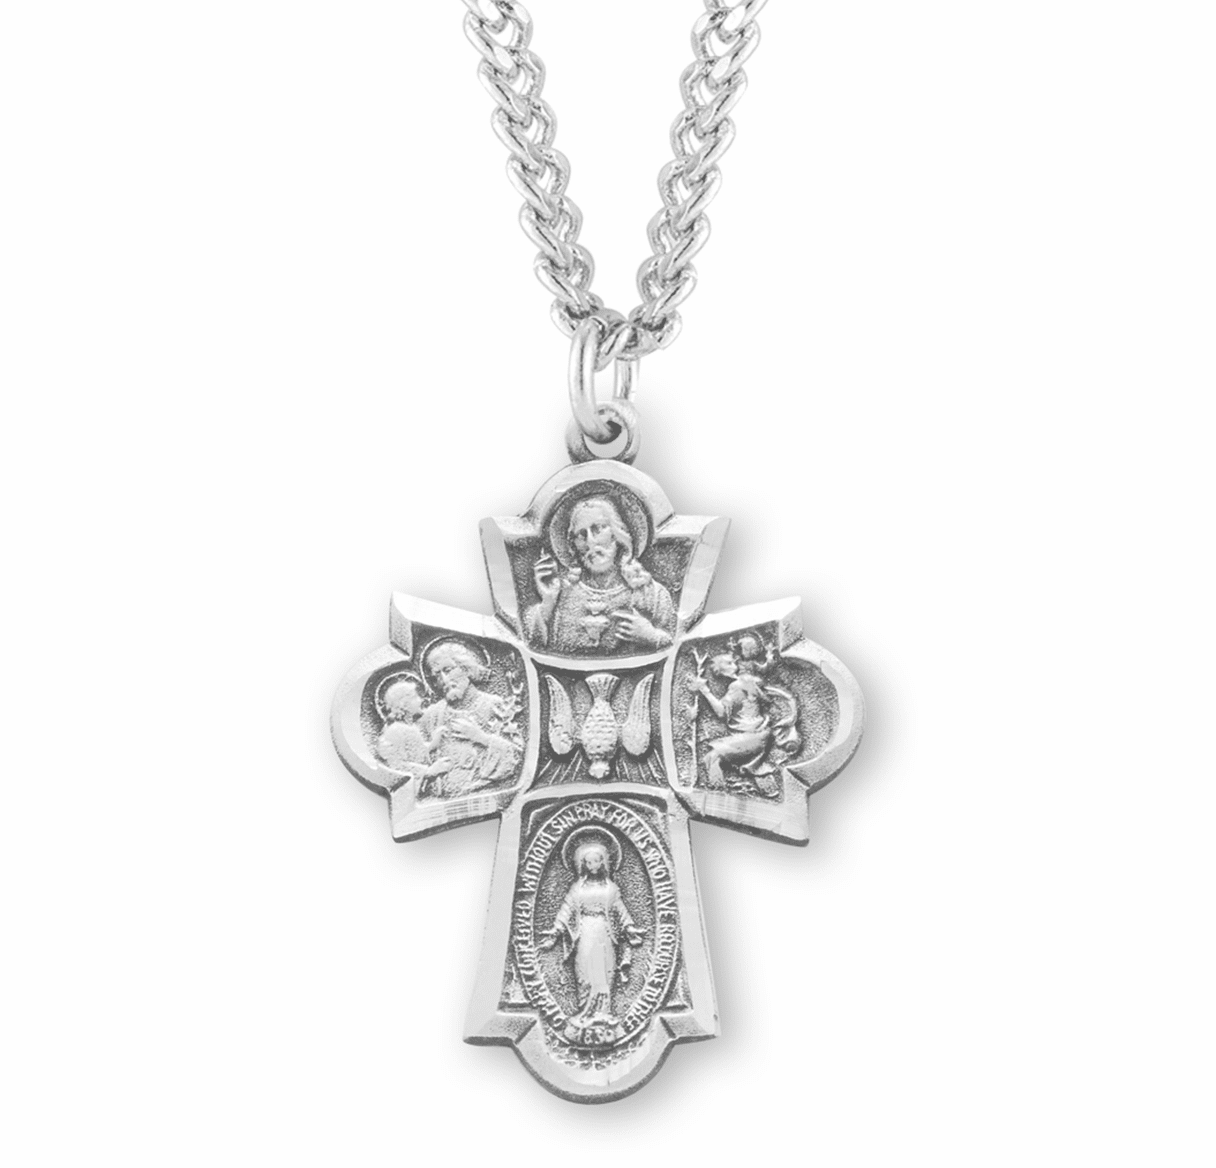 Holy Spirit Center Sterling 4-Way Medal Necklace by HMH Religious